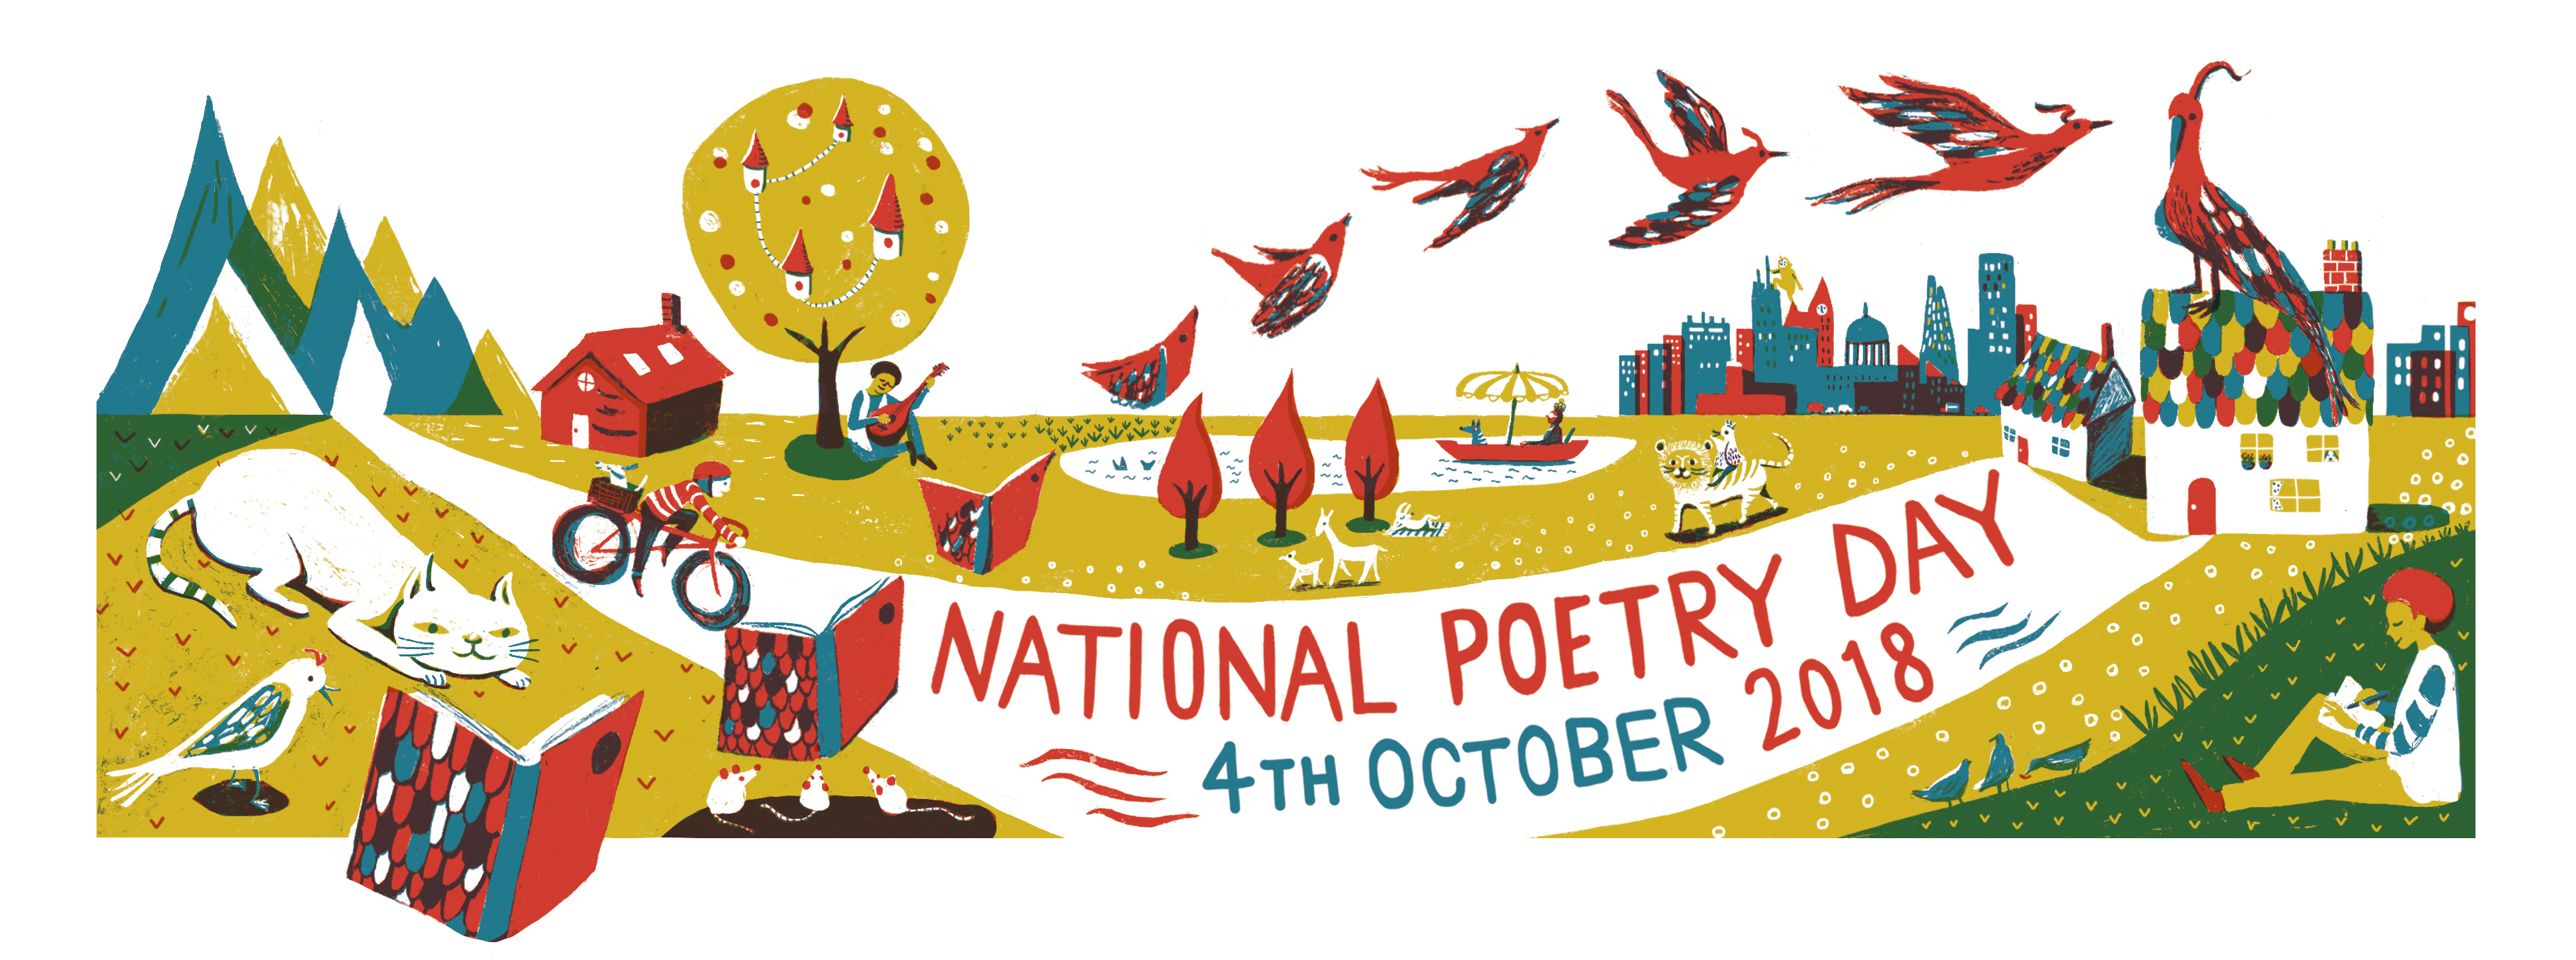 National Poetry Day 2018 web banner